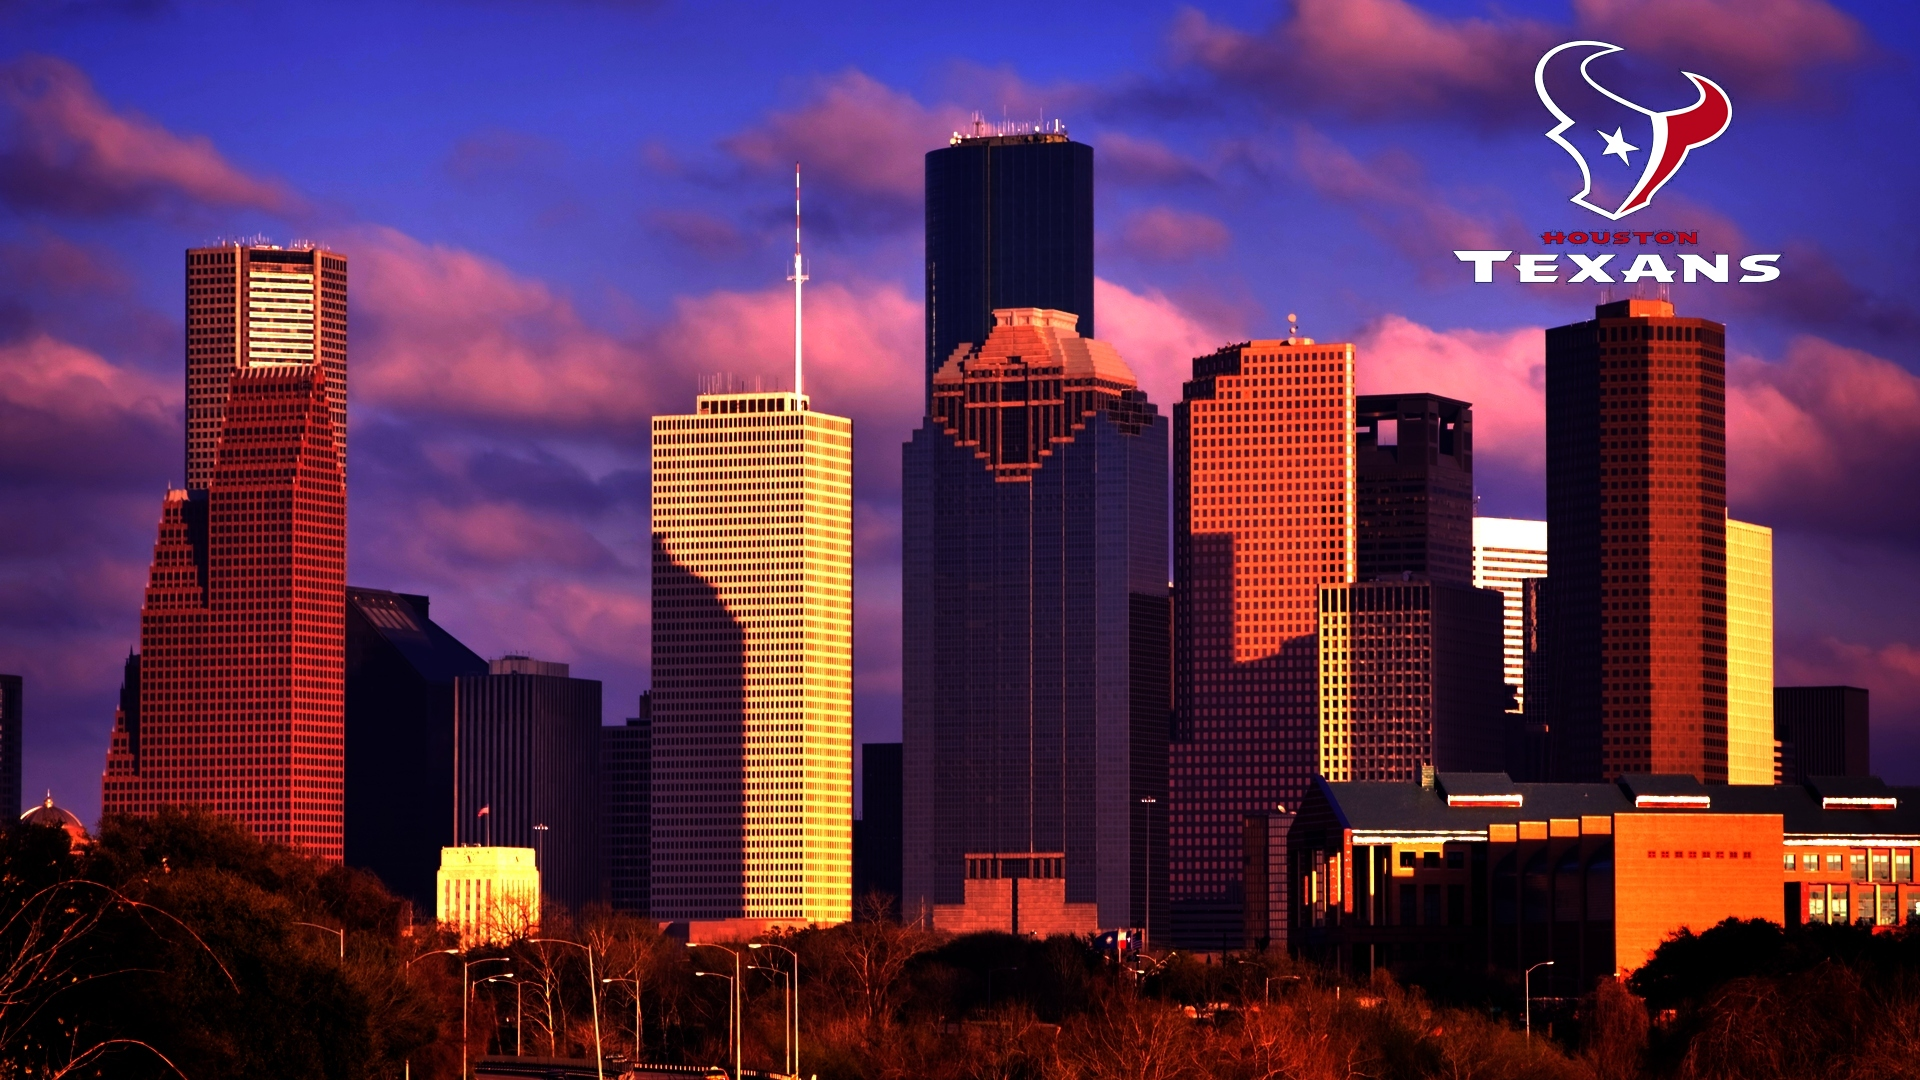 Pictures texans background houston texans background houston texans 1920x1080